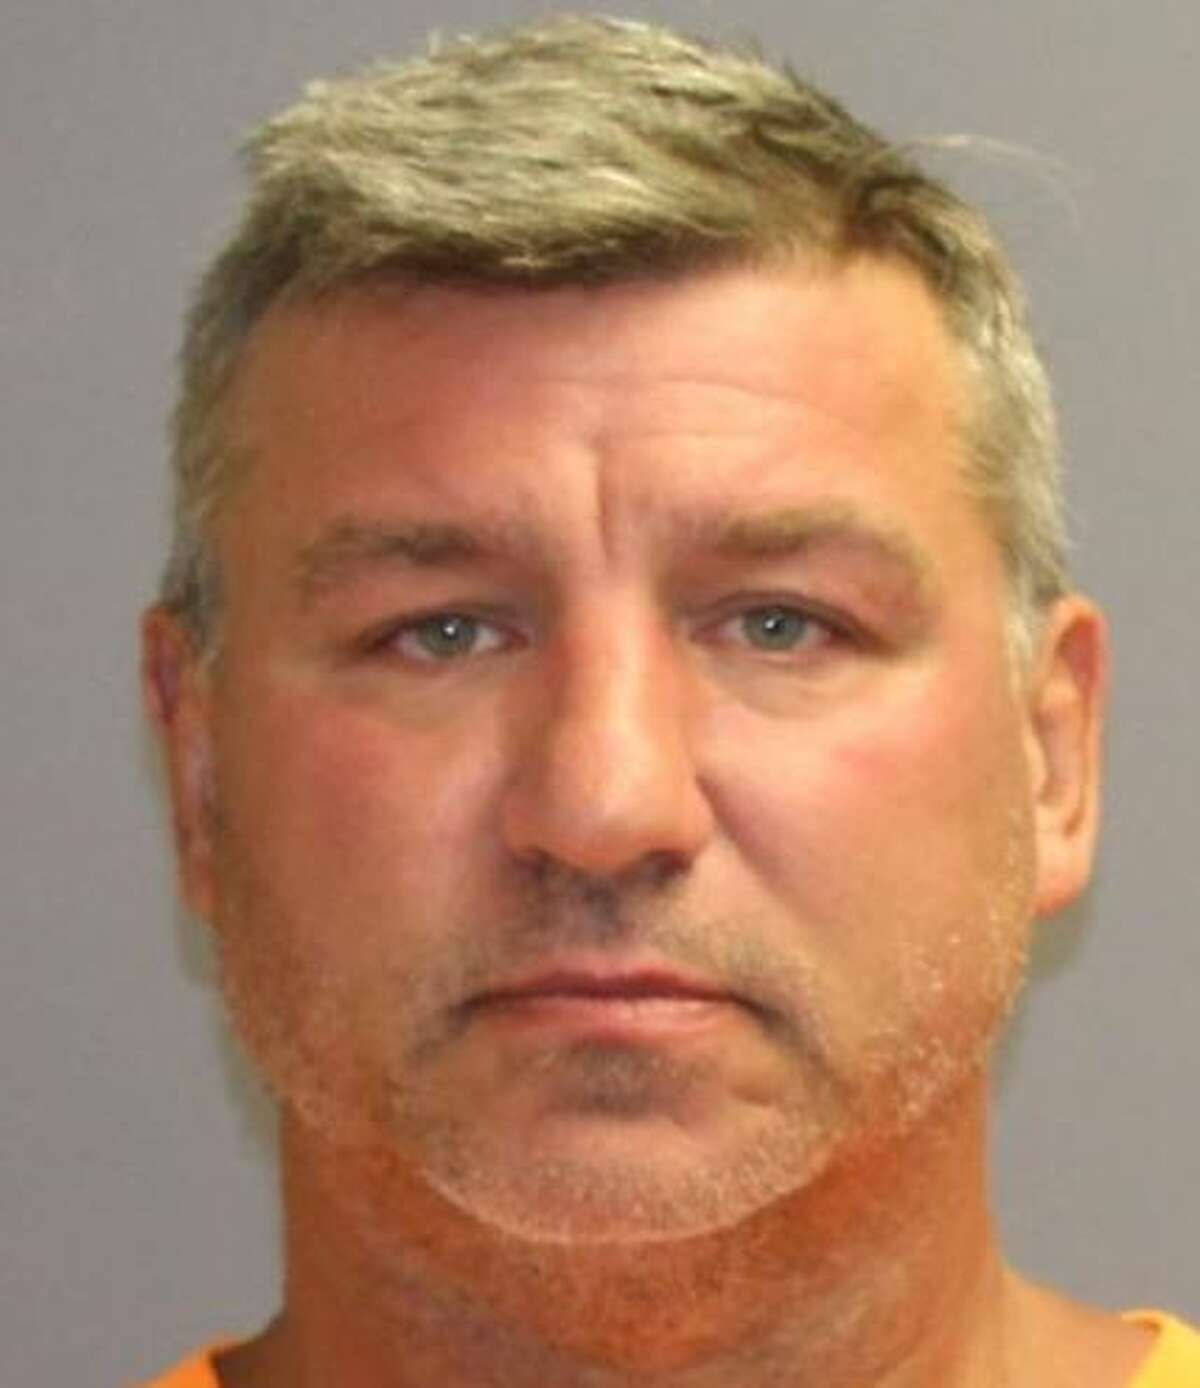 New York state police have charged Michael Bousquet for allegedly providing fraudulent checks to a seller of a boat in Gloversville Aug. 2, 2020 who posted it on Facebook Marketplace. Police are asking if anyone else might have been victimized by the suspect.